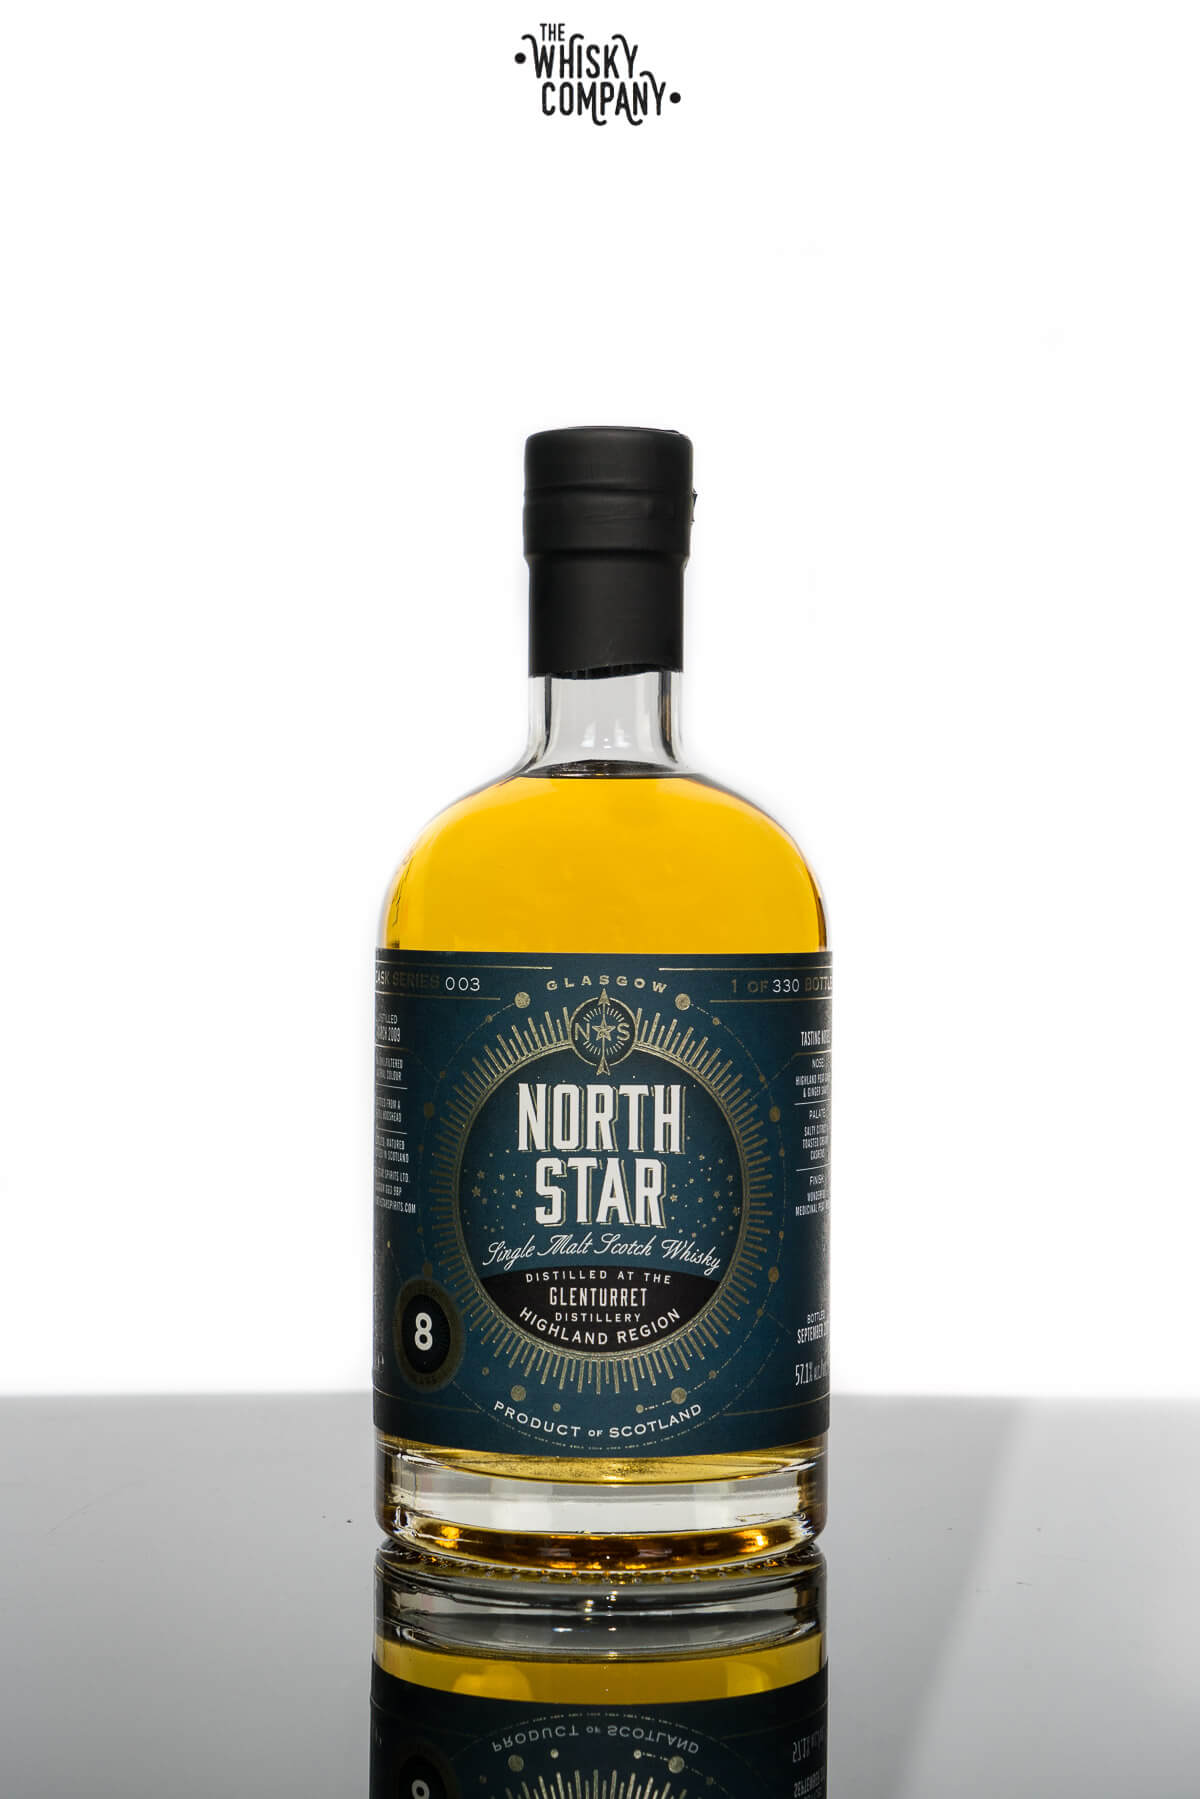 North Star Glenturret Aged 8 Years Peated Highland Single Malt Scotch Whisky (700ml)